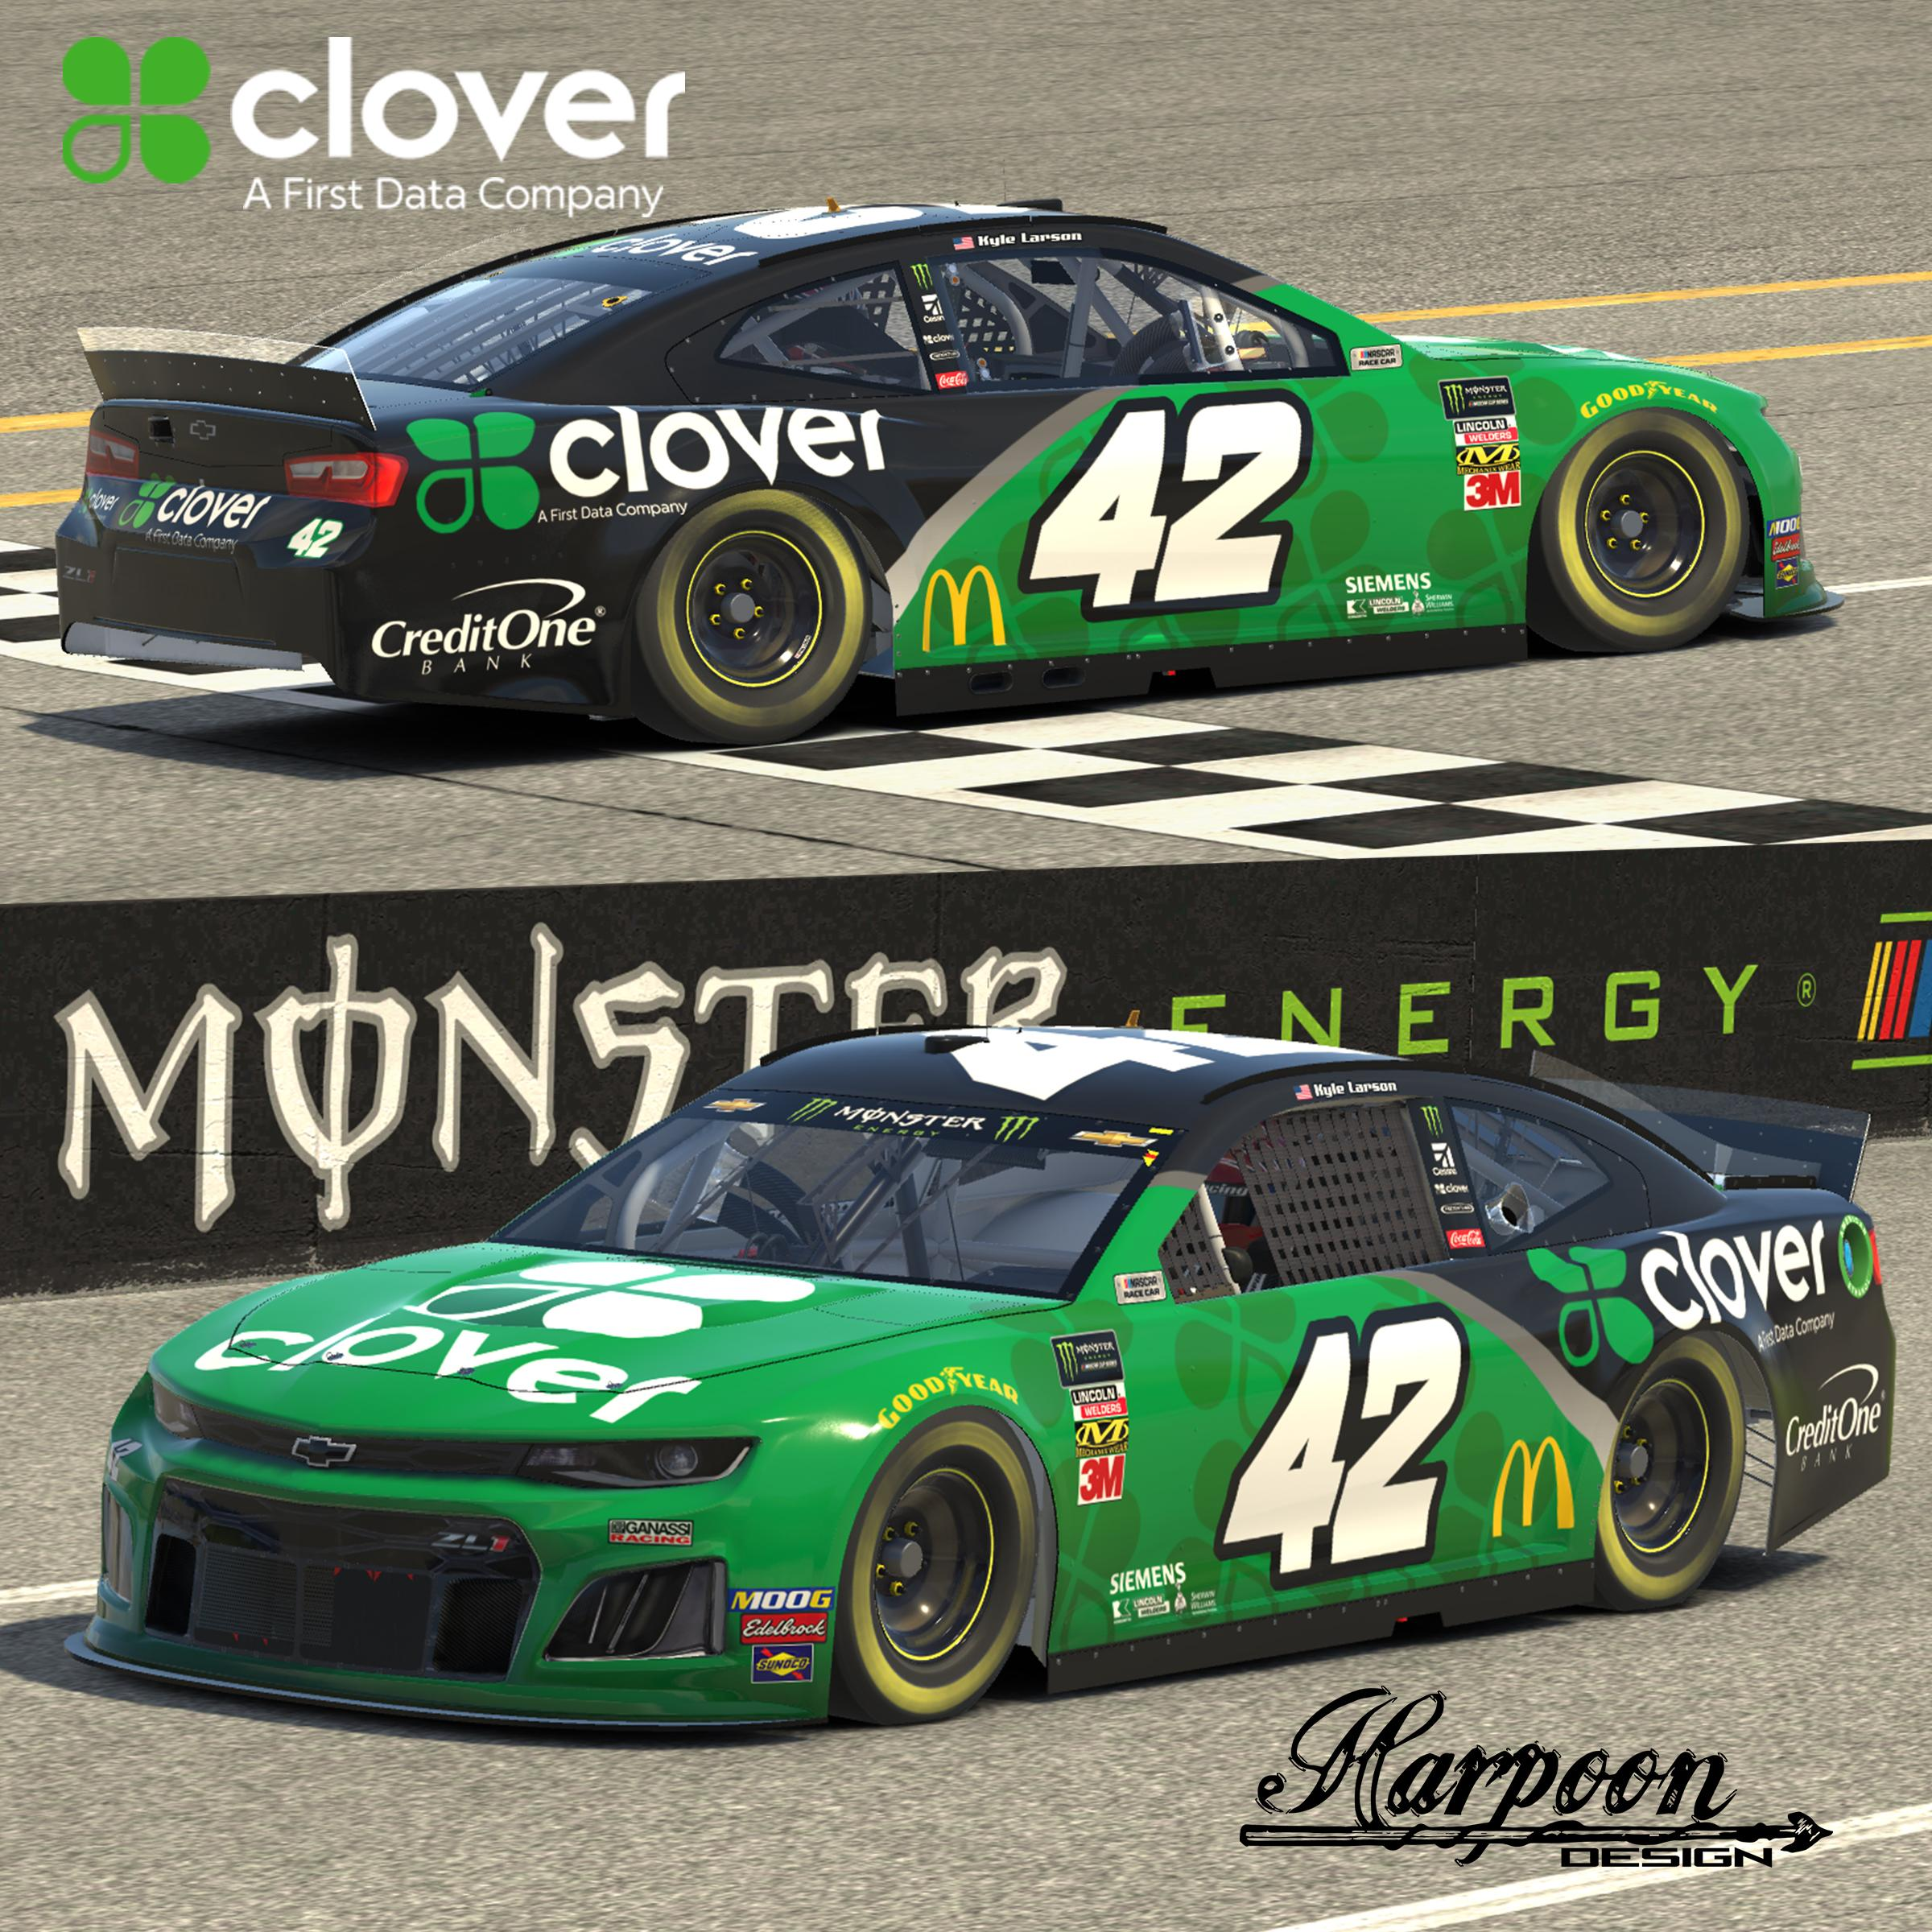 Preview of 2019 Kyle Larson First Data Clover Camaro no num by Brantley Roden